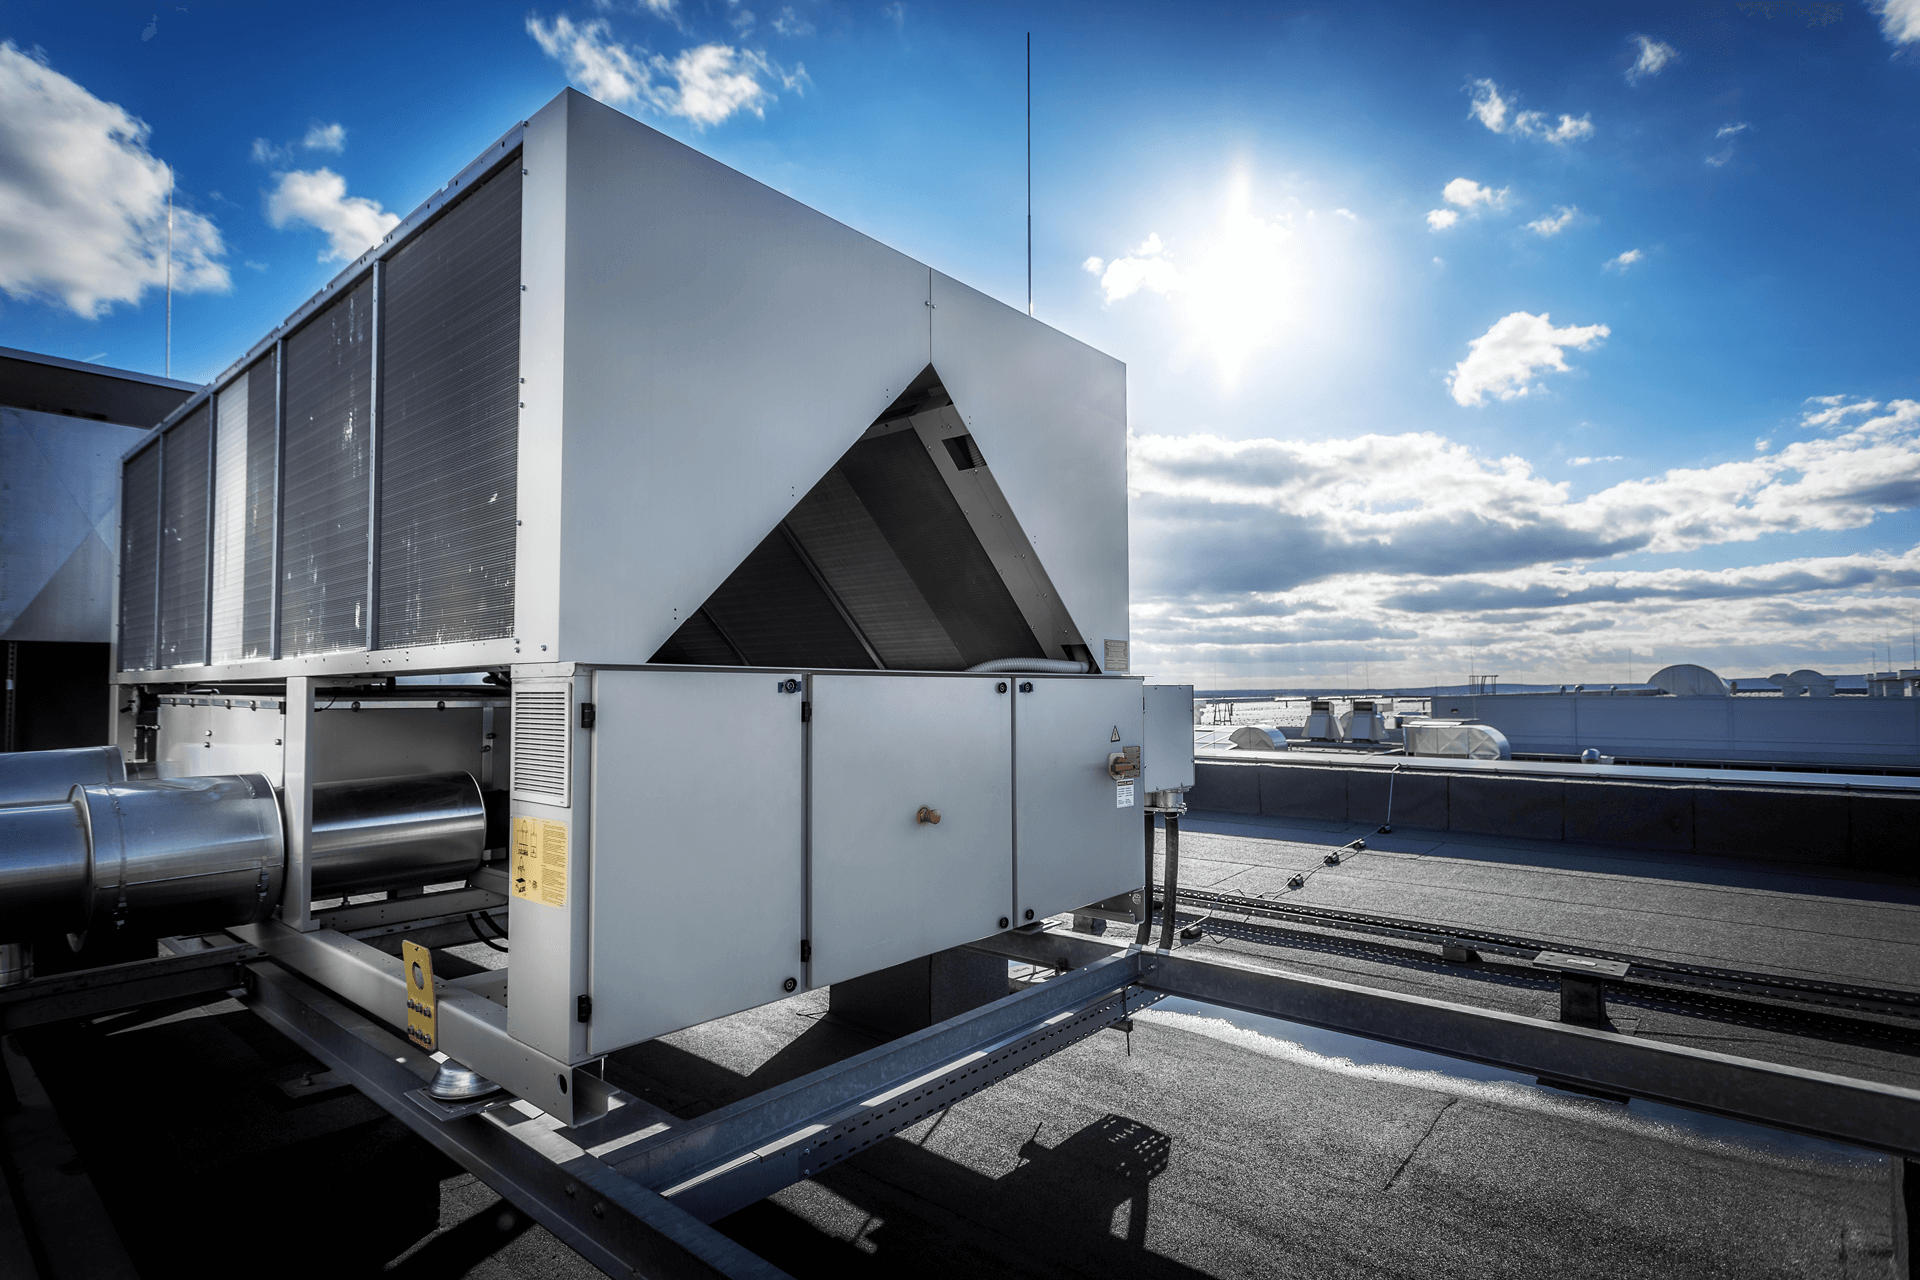 Commercial AC unit on top of a building